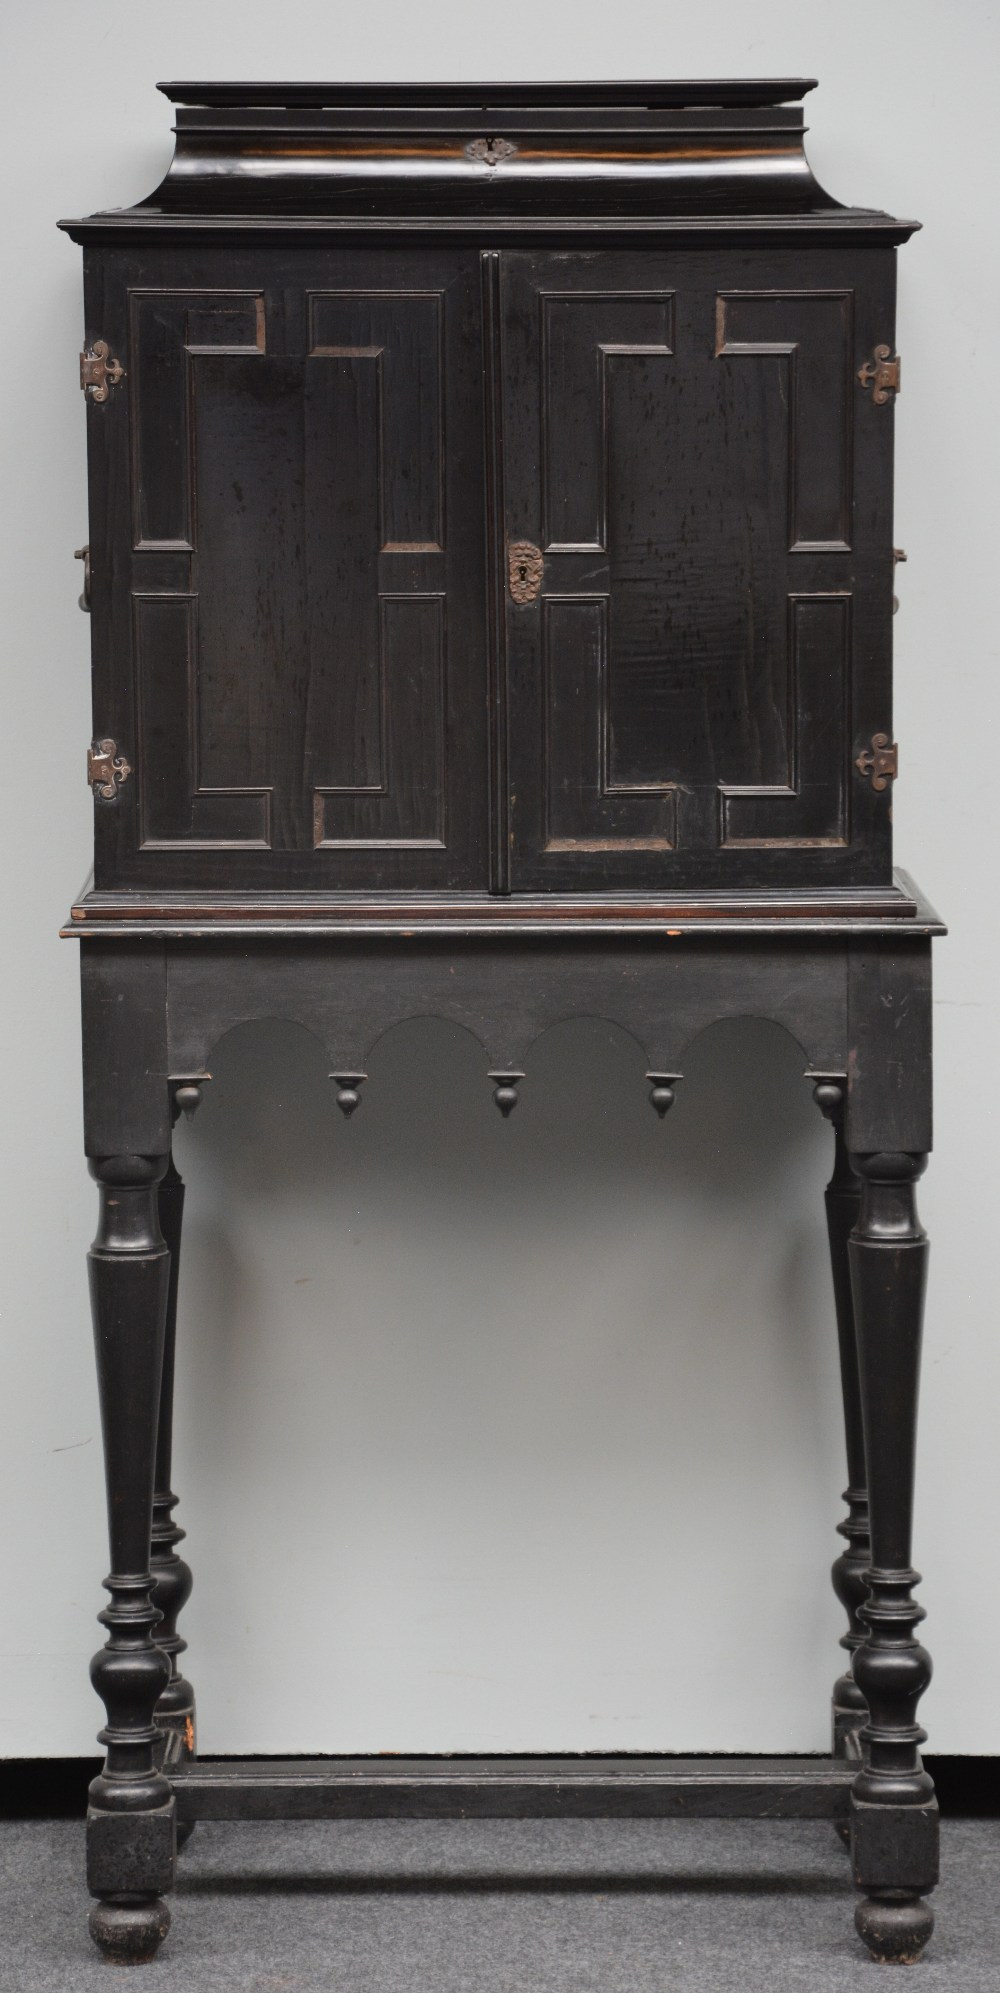 An exceptional 17thC Flemish ebony and rosewood cabinet-on-stand, silk embroidered inside, the - Image 2 of 30